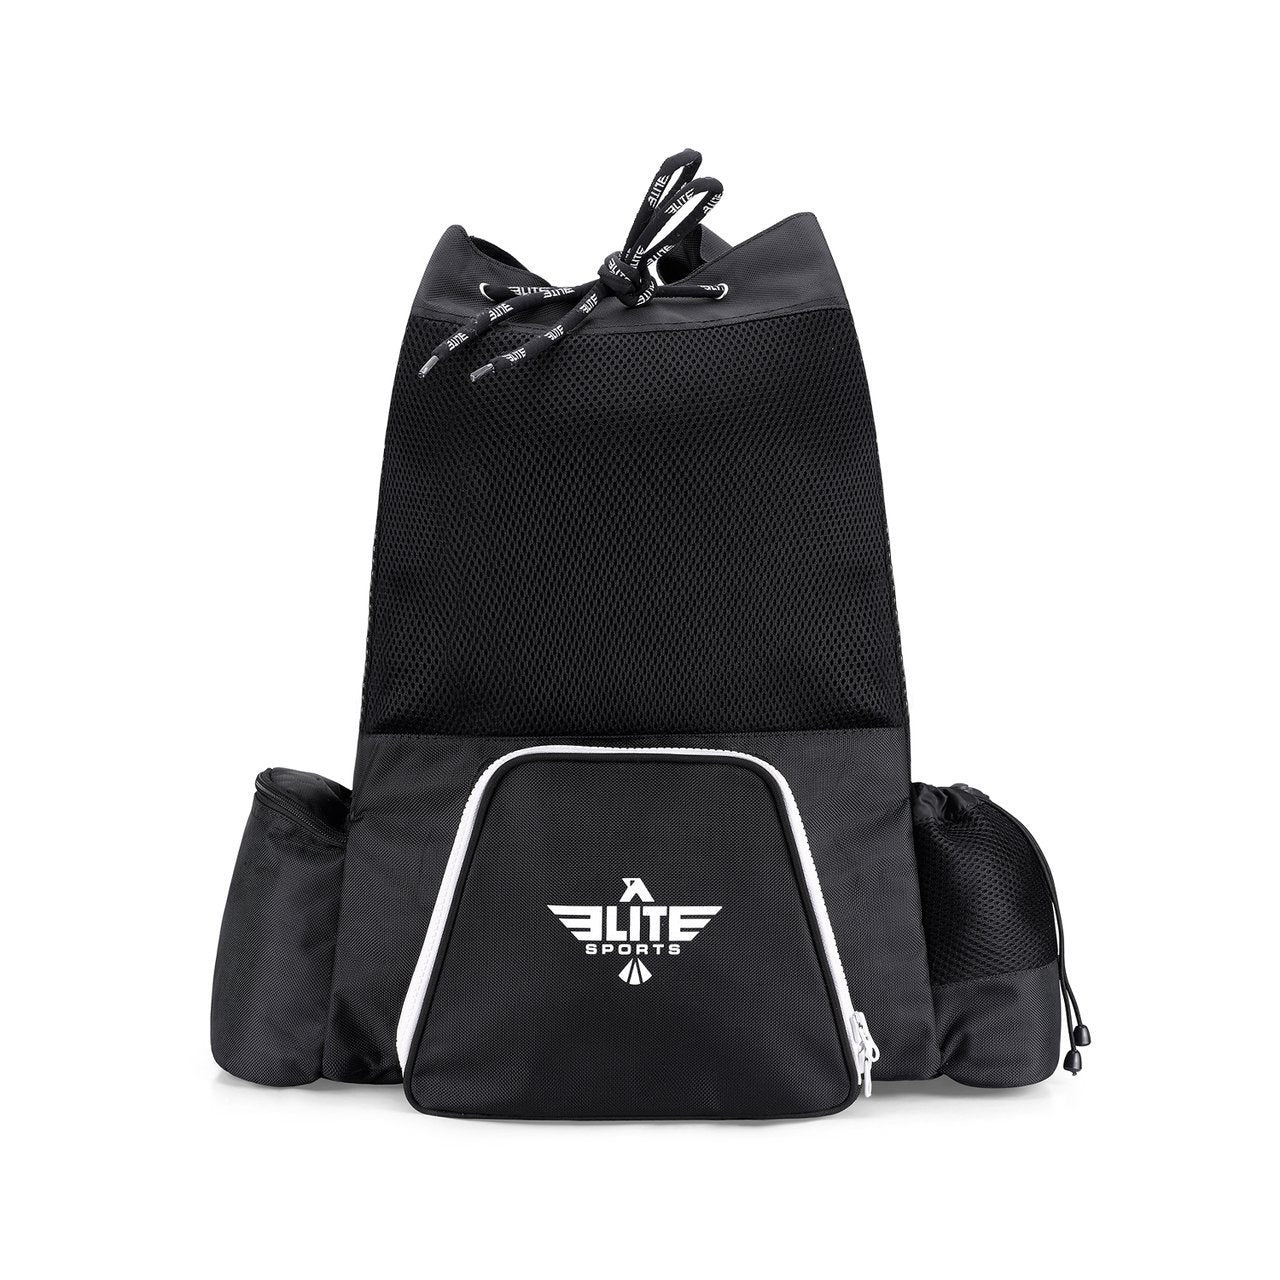 Elite Sports Mesh Black Medium MMA Gear Gym Bag & Backpack